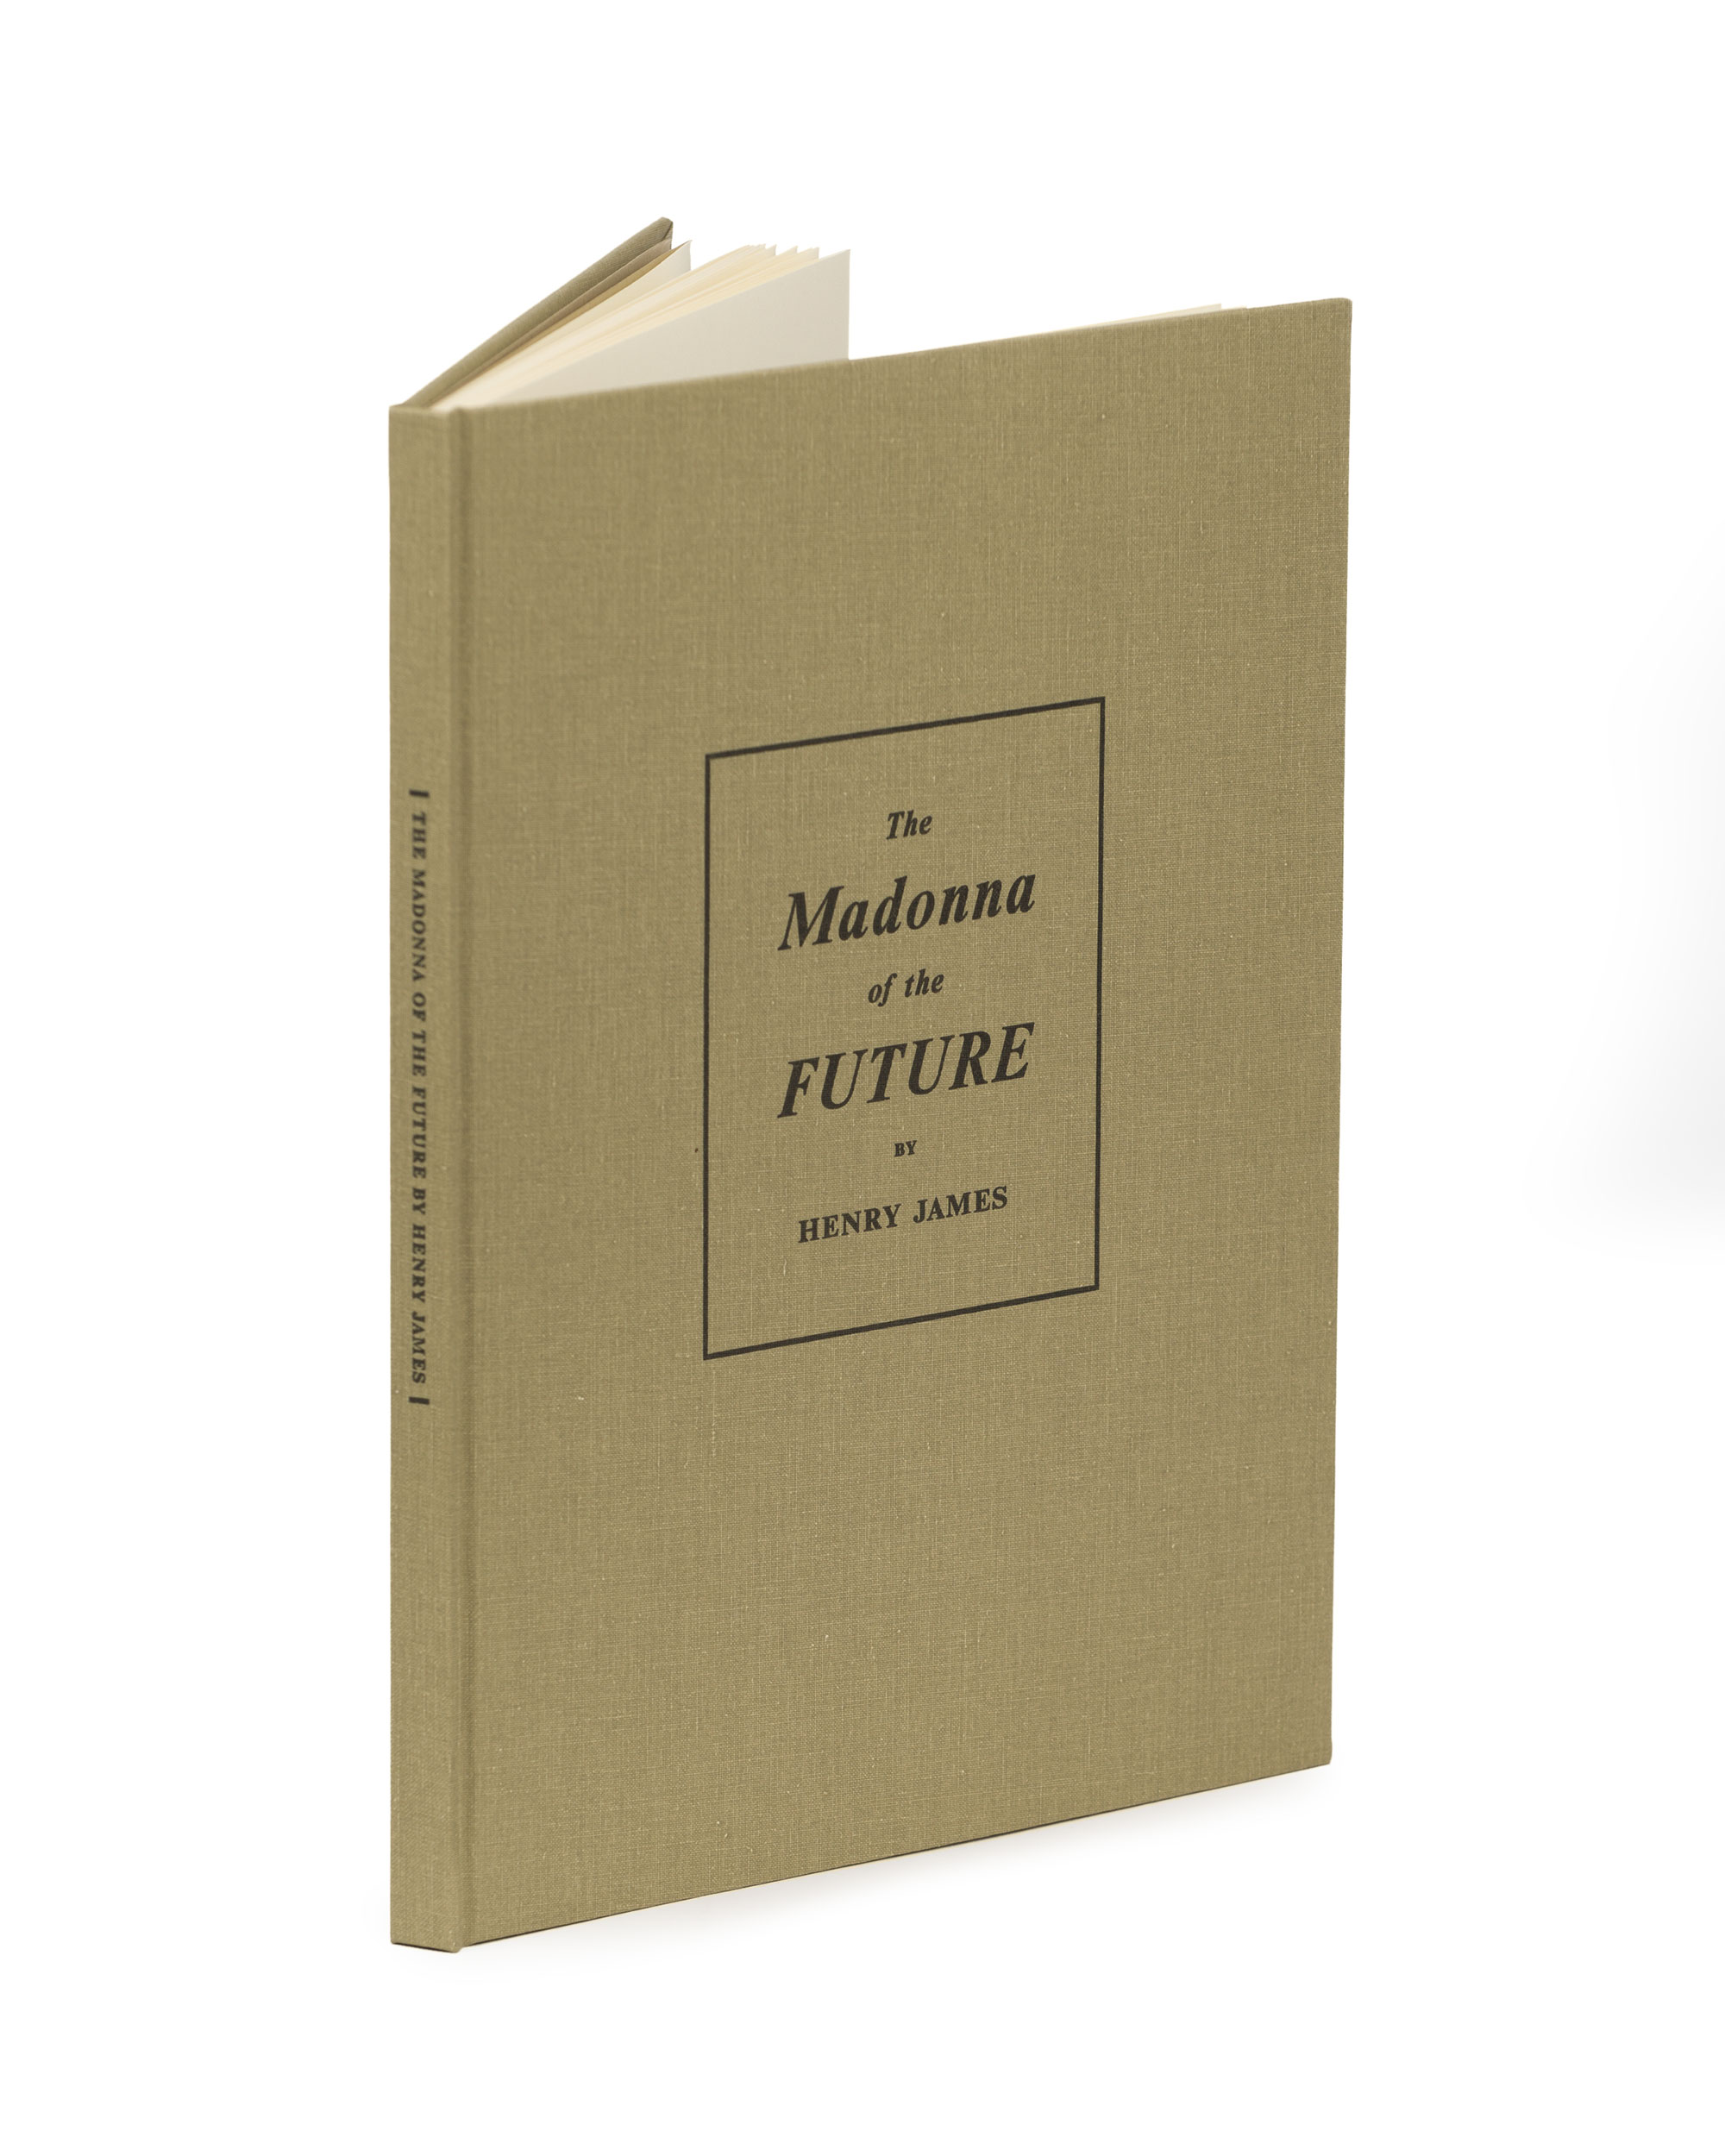 052_The-Madonna-of-the-Future-3-4-fix.jpg